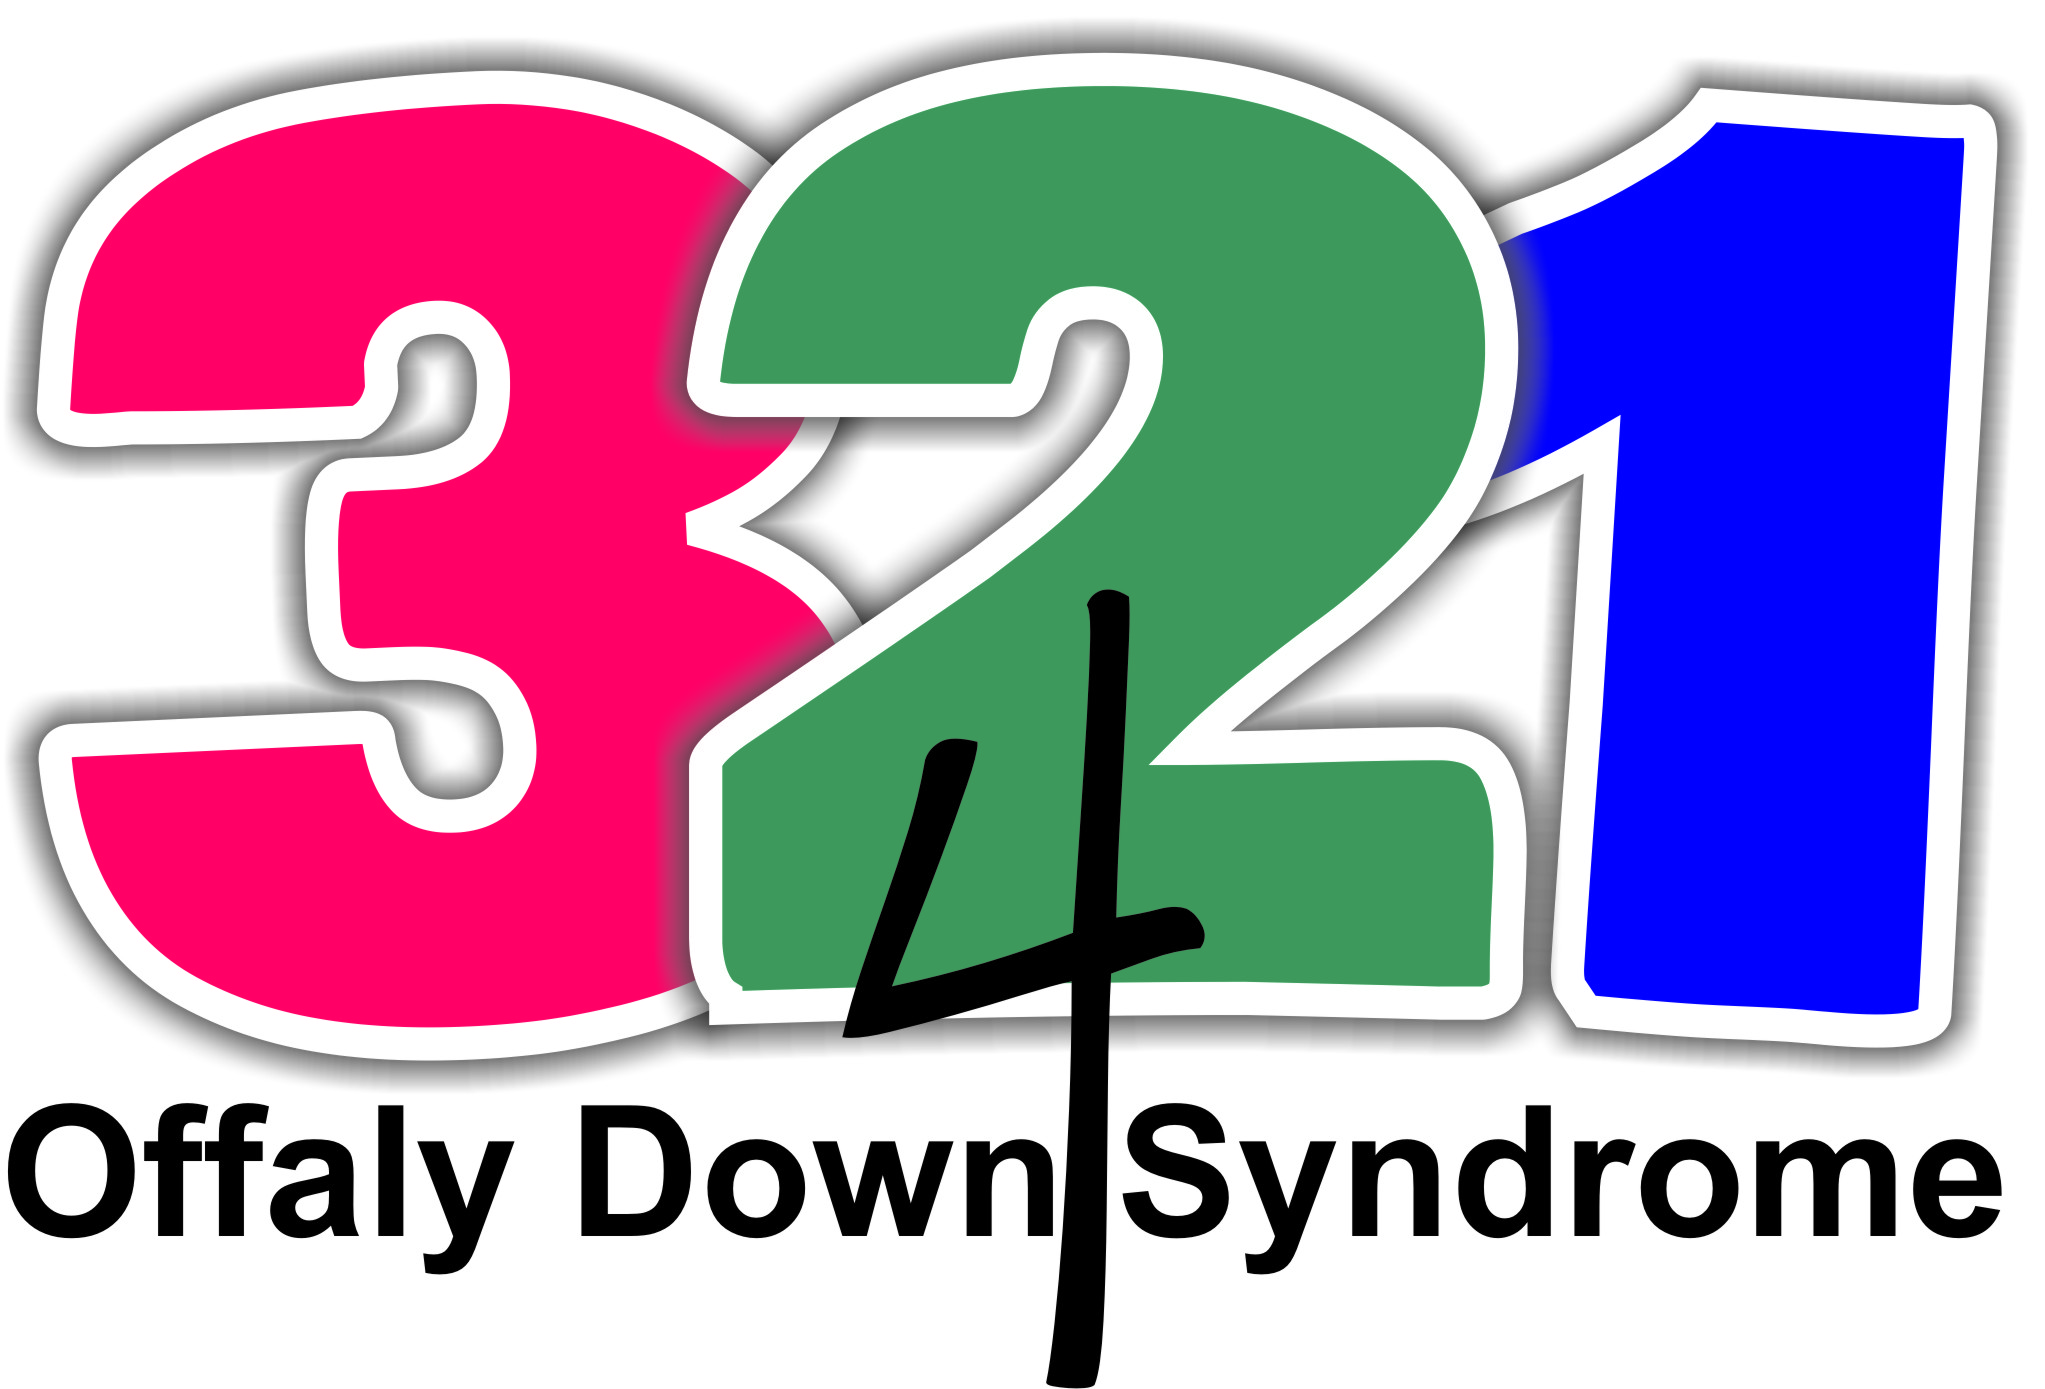 Offaly Down Syndrome 321 Challenge